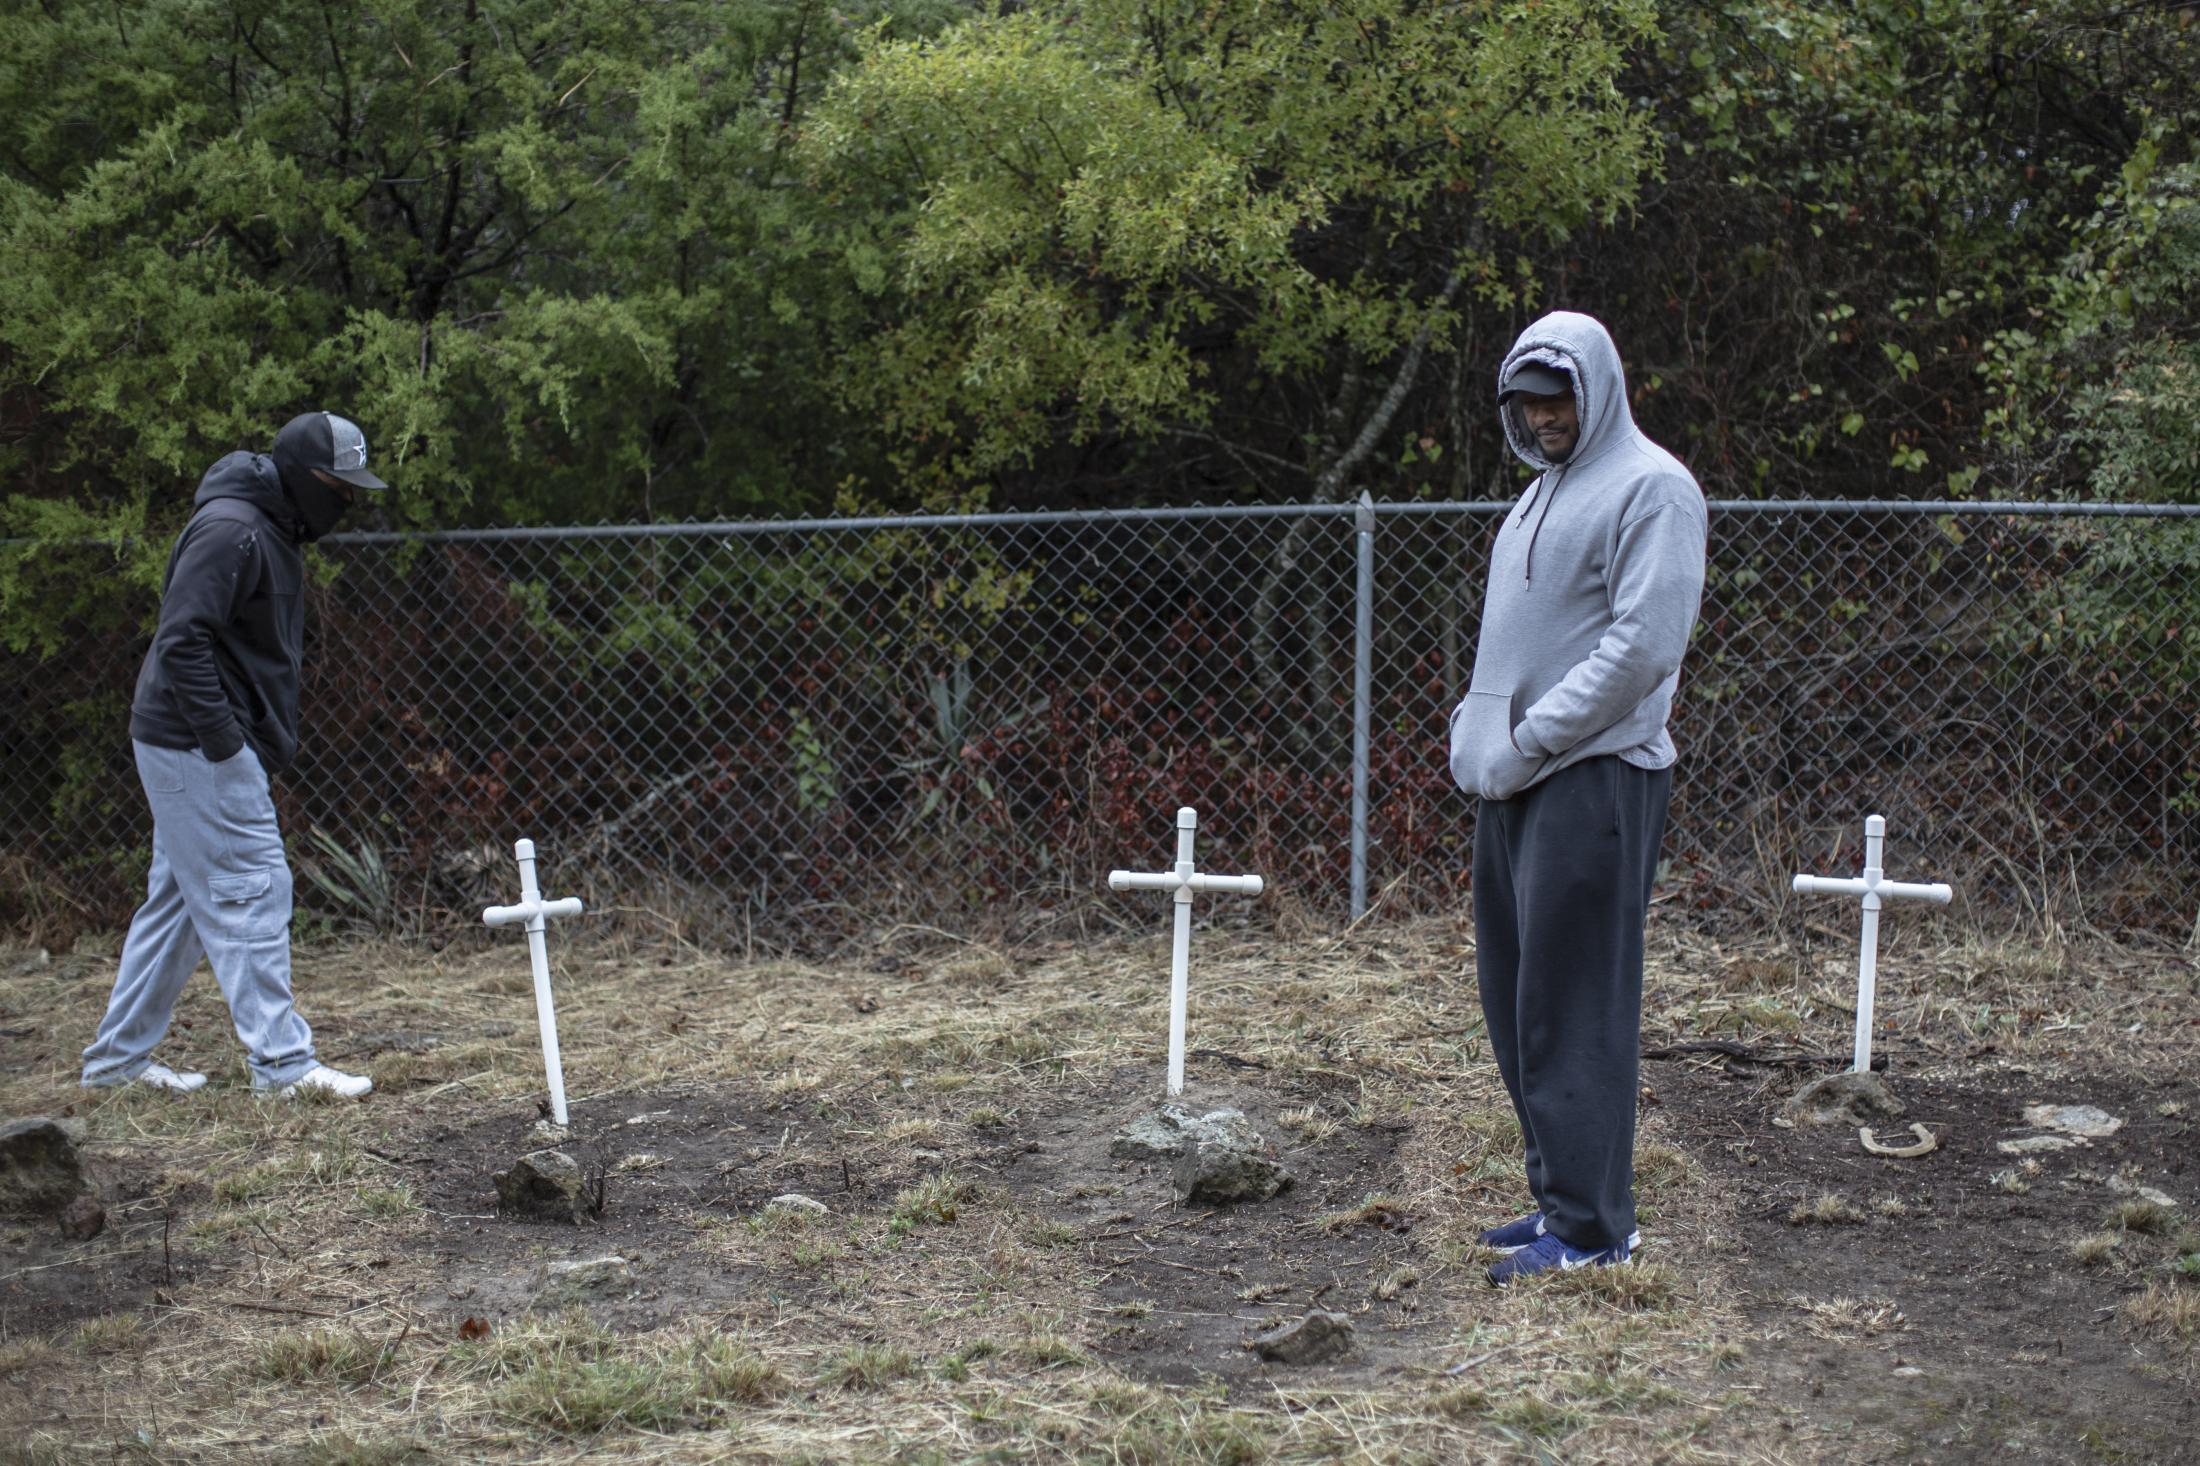 Anthony Crawford (Left) and James Gray (Right) walk the newly discovered cemetery discovered by a caretaker of the property currently being excavated for development. Both brothers are local Weatherford activists fighting to find the slave trade history in their hometown and protest and organize against a Confederate statue at the Weatherford Courthouse, which the United Confederate Daughters placed.